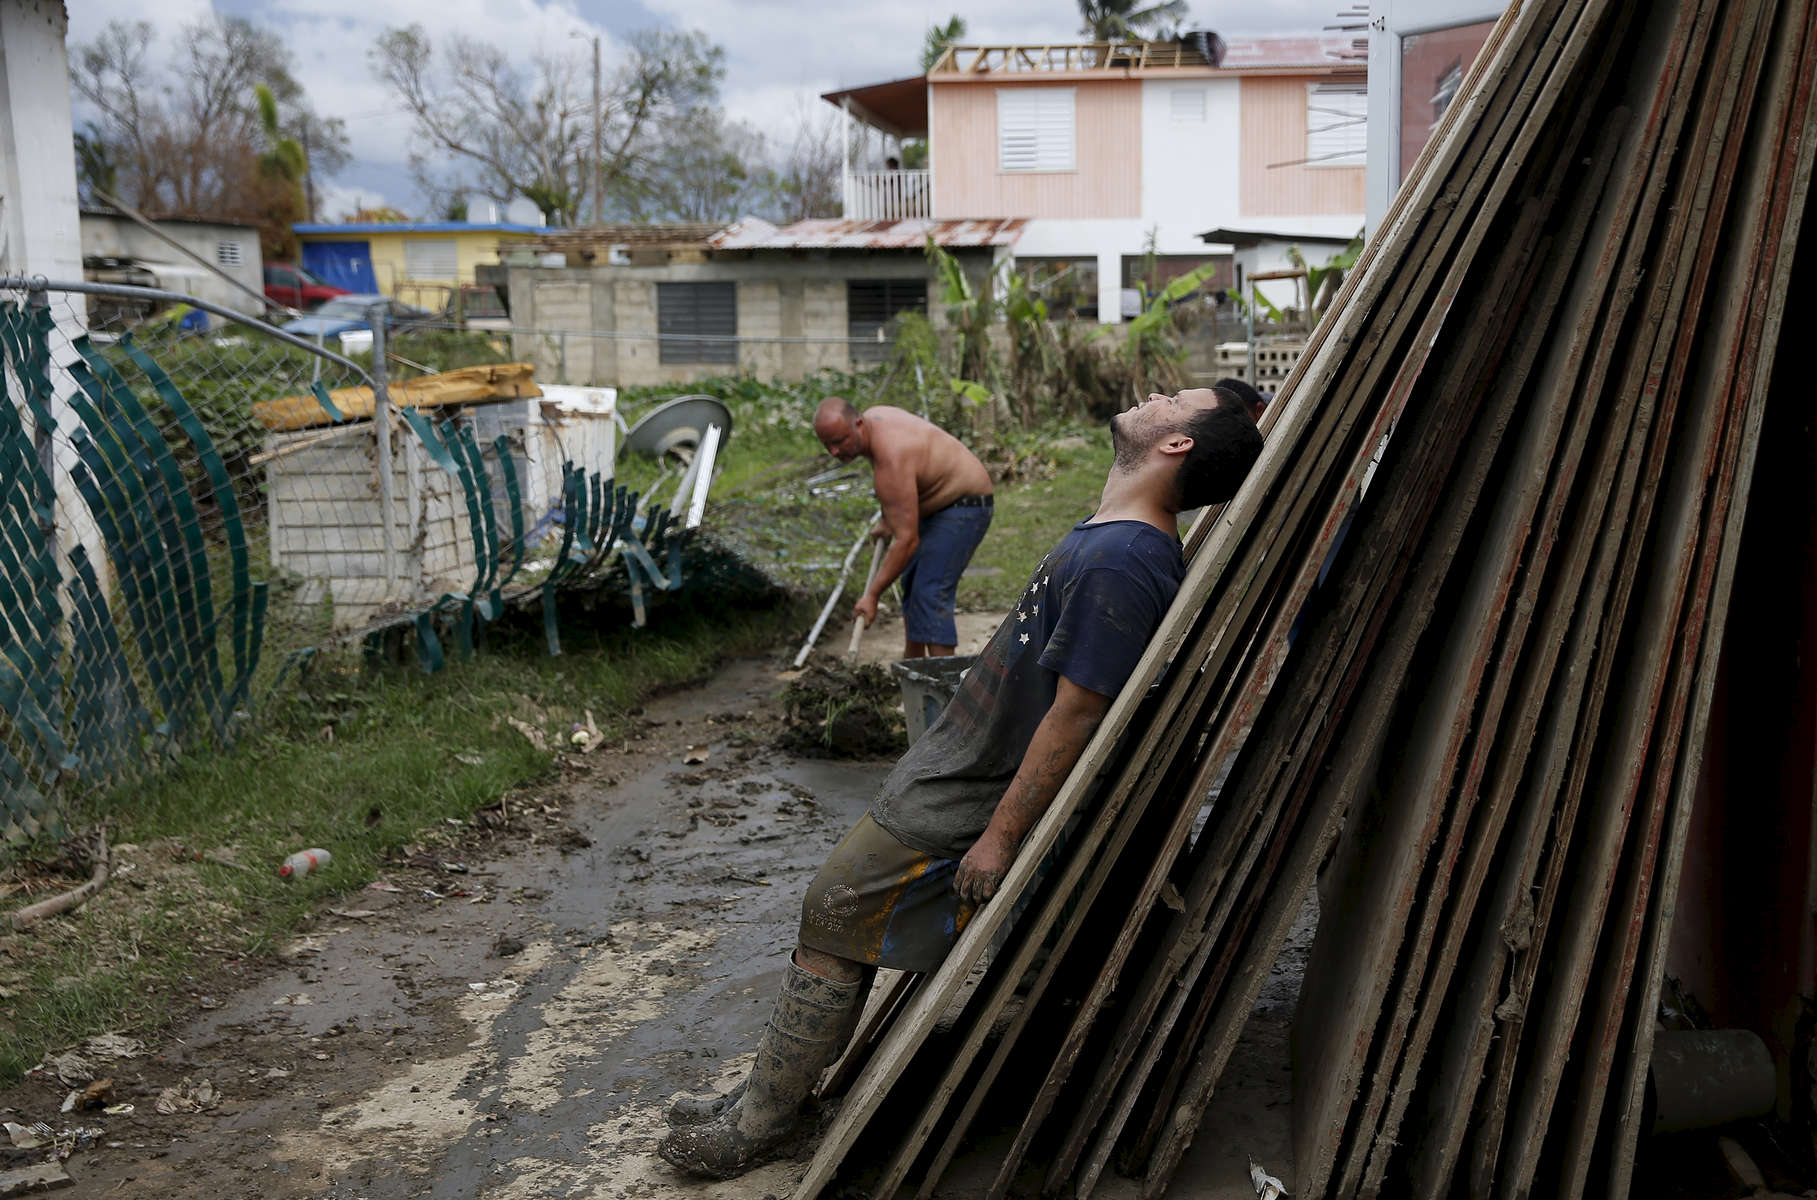 Toa Baja, Puerto Rico -- 9/30/2017 - Ten days after Hurricane Maria hit Puerto Rico, Eric La Luz, 15, and his family were still doing the mentally and physically exhausting work of cleaning out their home. Almost everything in the home was a total loss, but they were eager to move out of the shelter they were living in and get back home. Using a rectangular plastic tub they dragged bin after bin of mud and debris out of their home in Toa Baja.